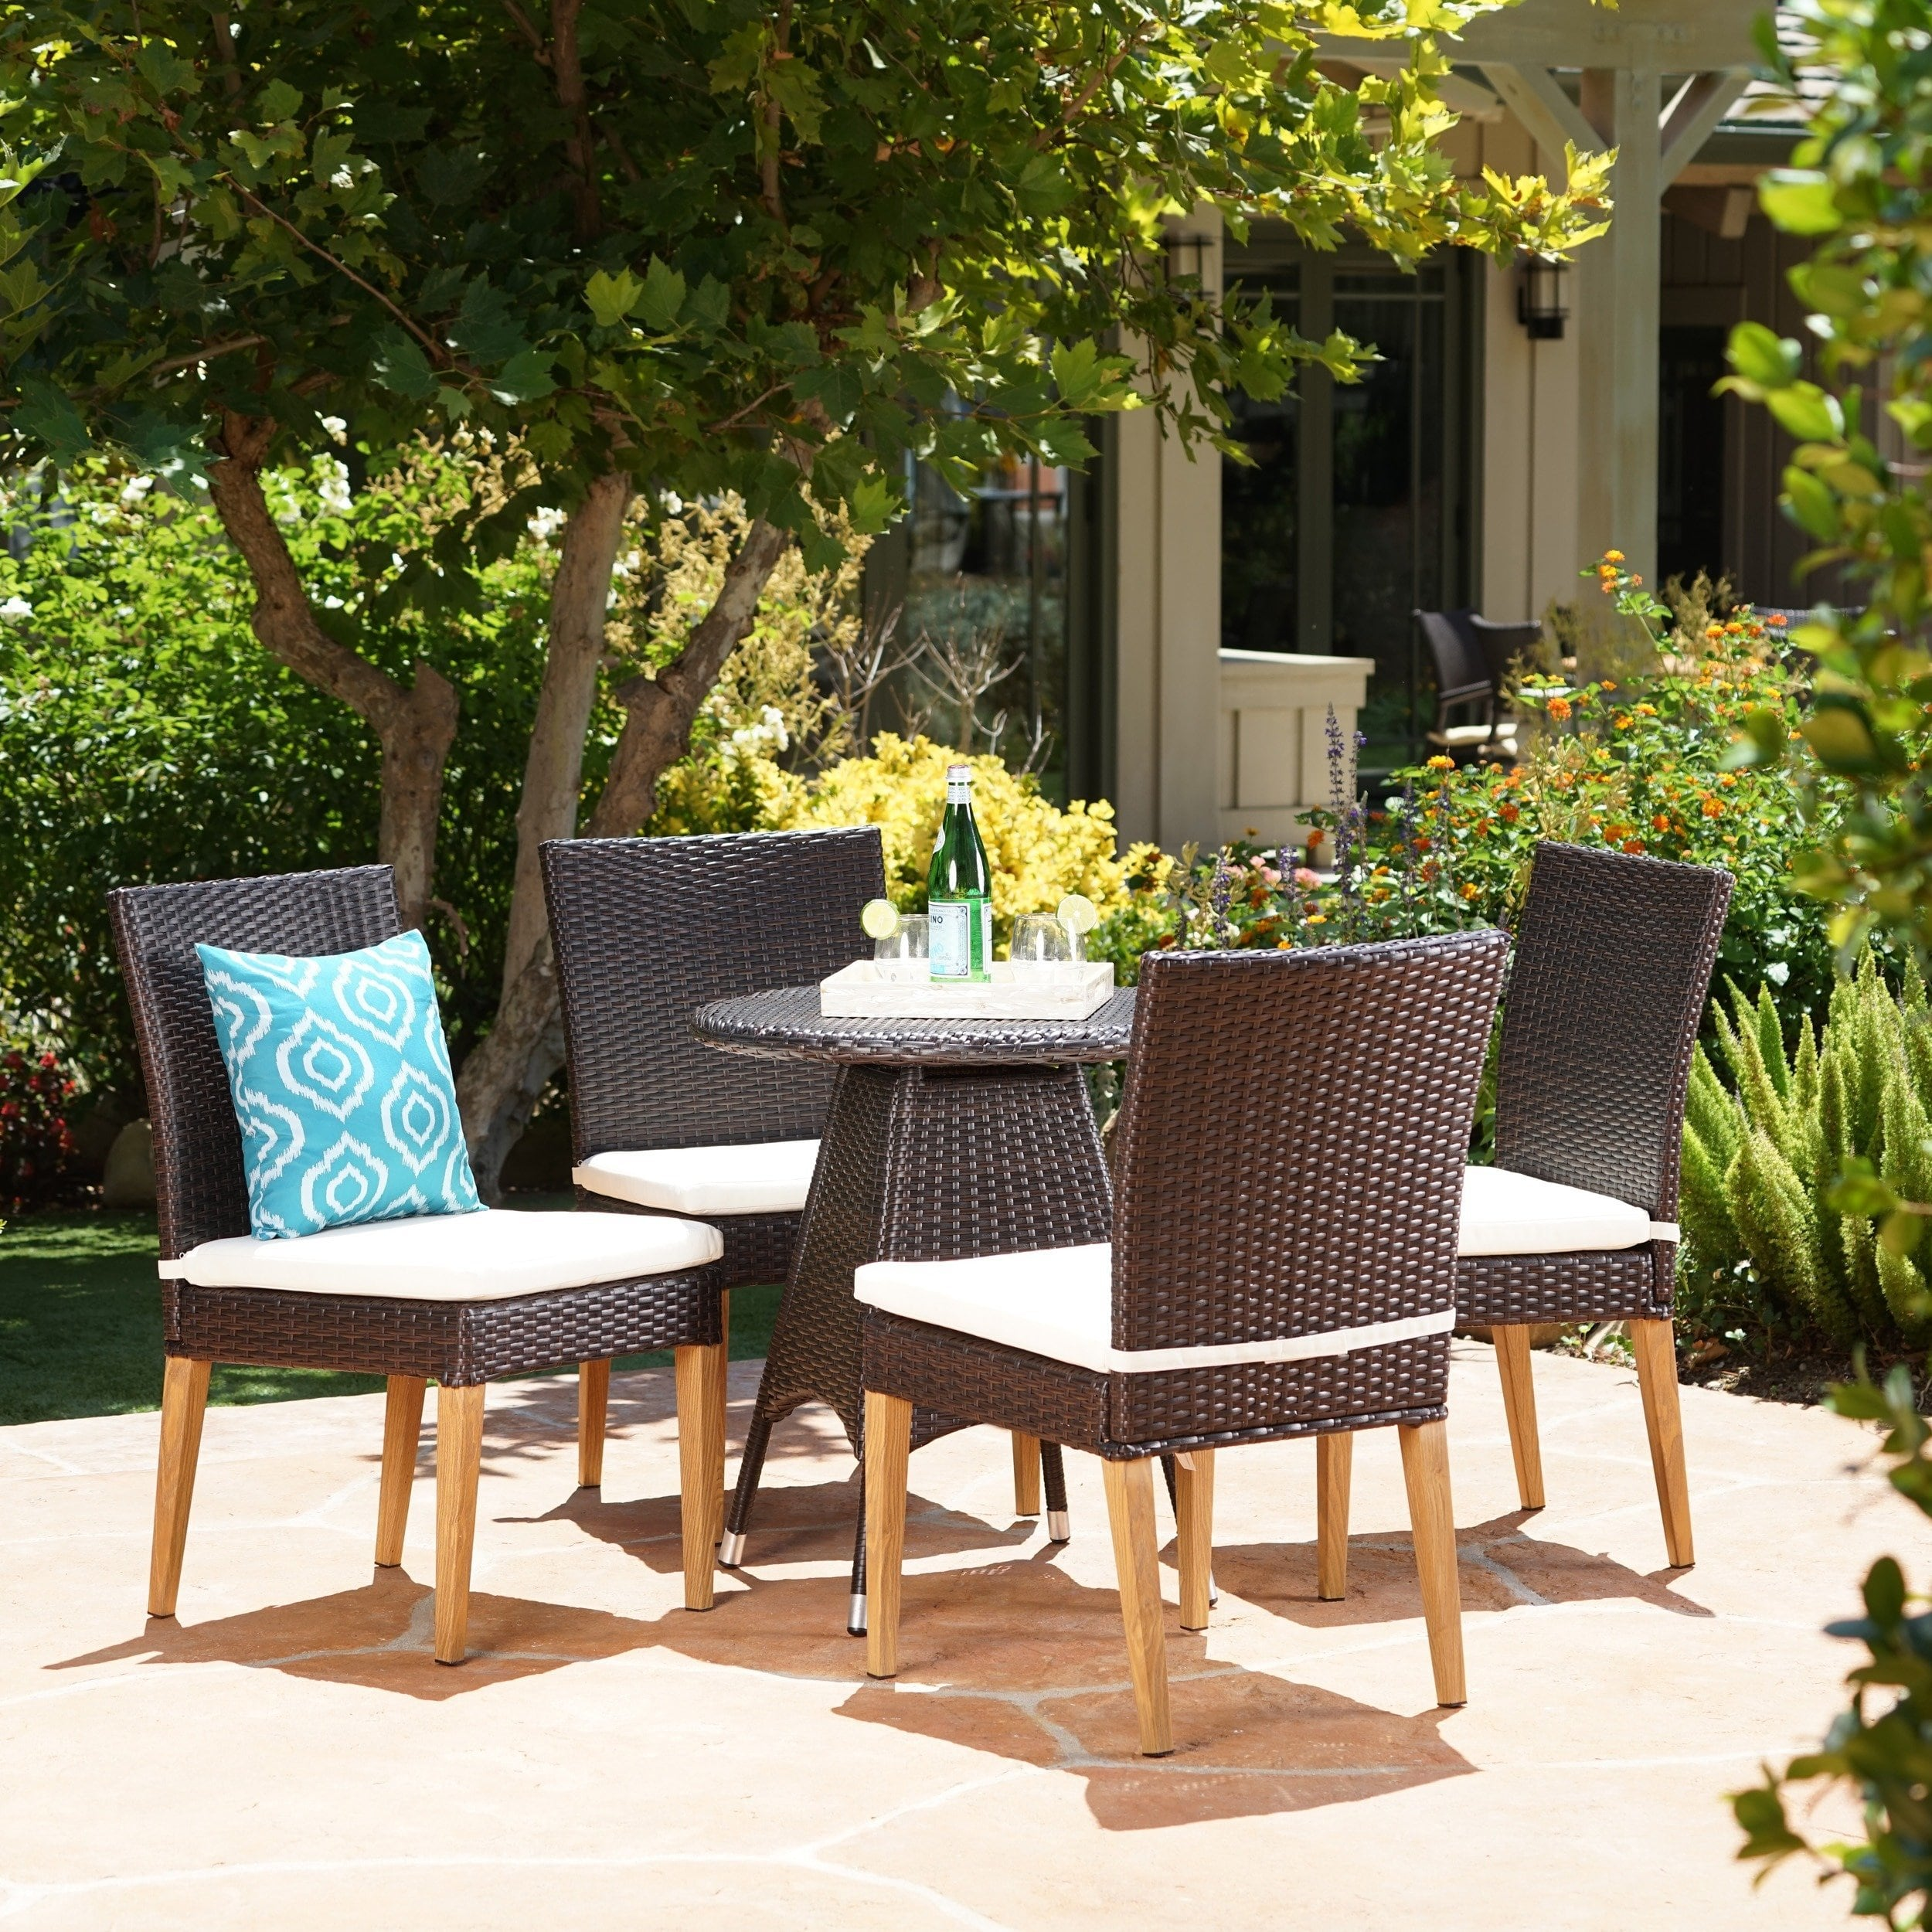 Christopher Knight Home Santa Barbara Outdoor 5-Piece Round Wicker Dining Set with Cushions & Umbrella Hole by